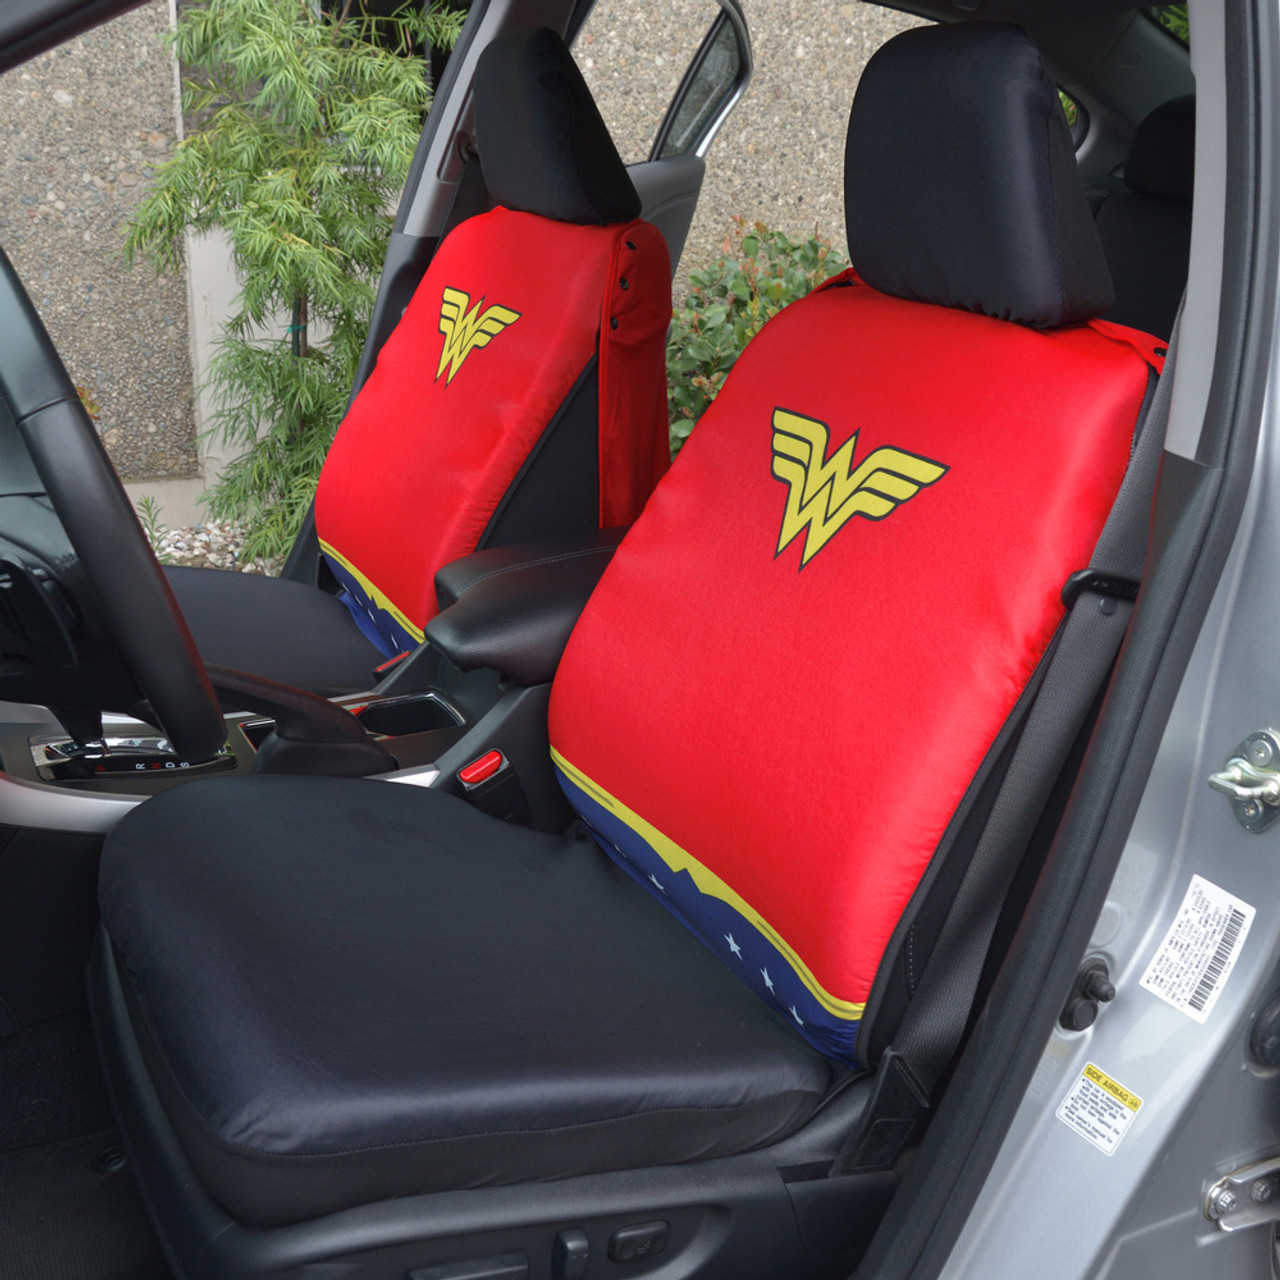 Brilliant Superhero Seat Covers With Detachable Cape Backing Front Car Seat Covers Seat Back Protector Wonder Woman Gamerscity Chair Design For Home Gamerscityorg